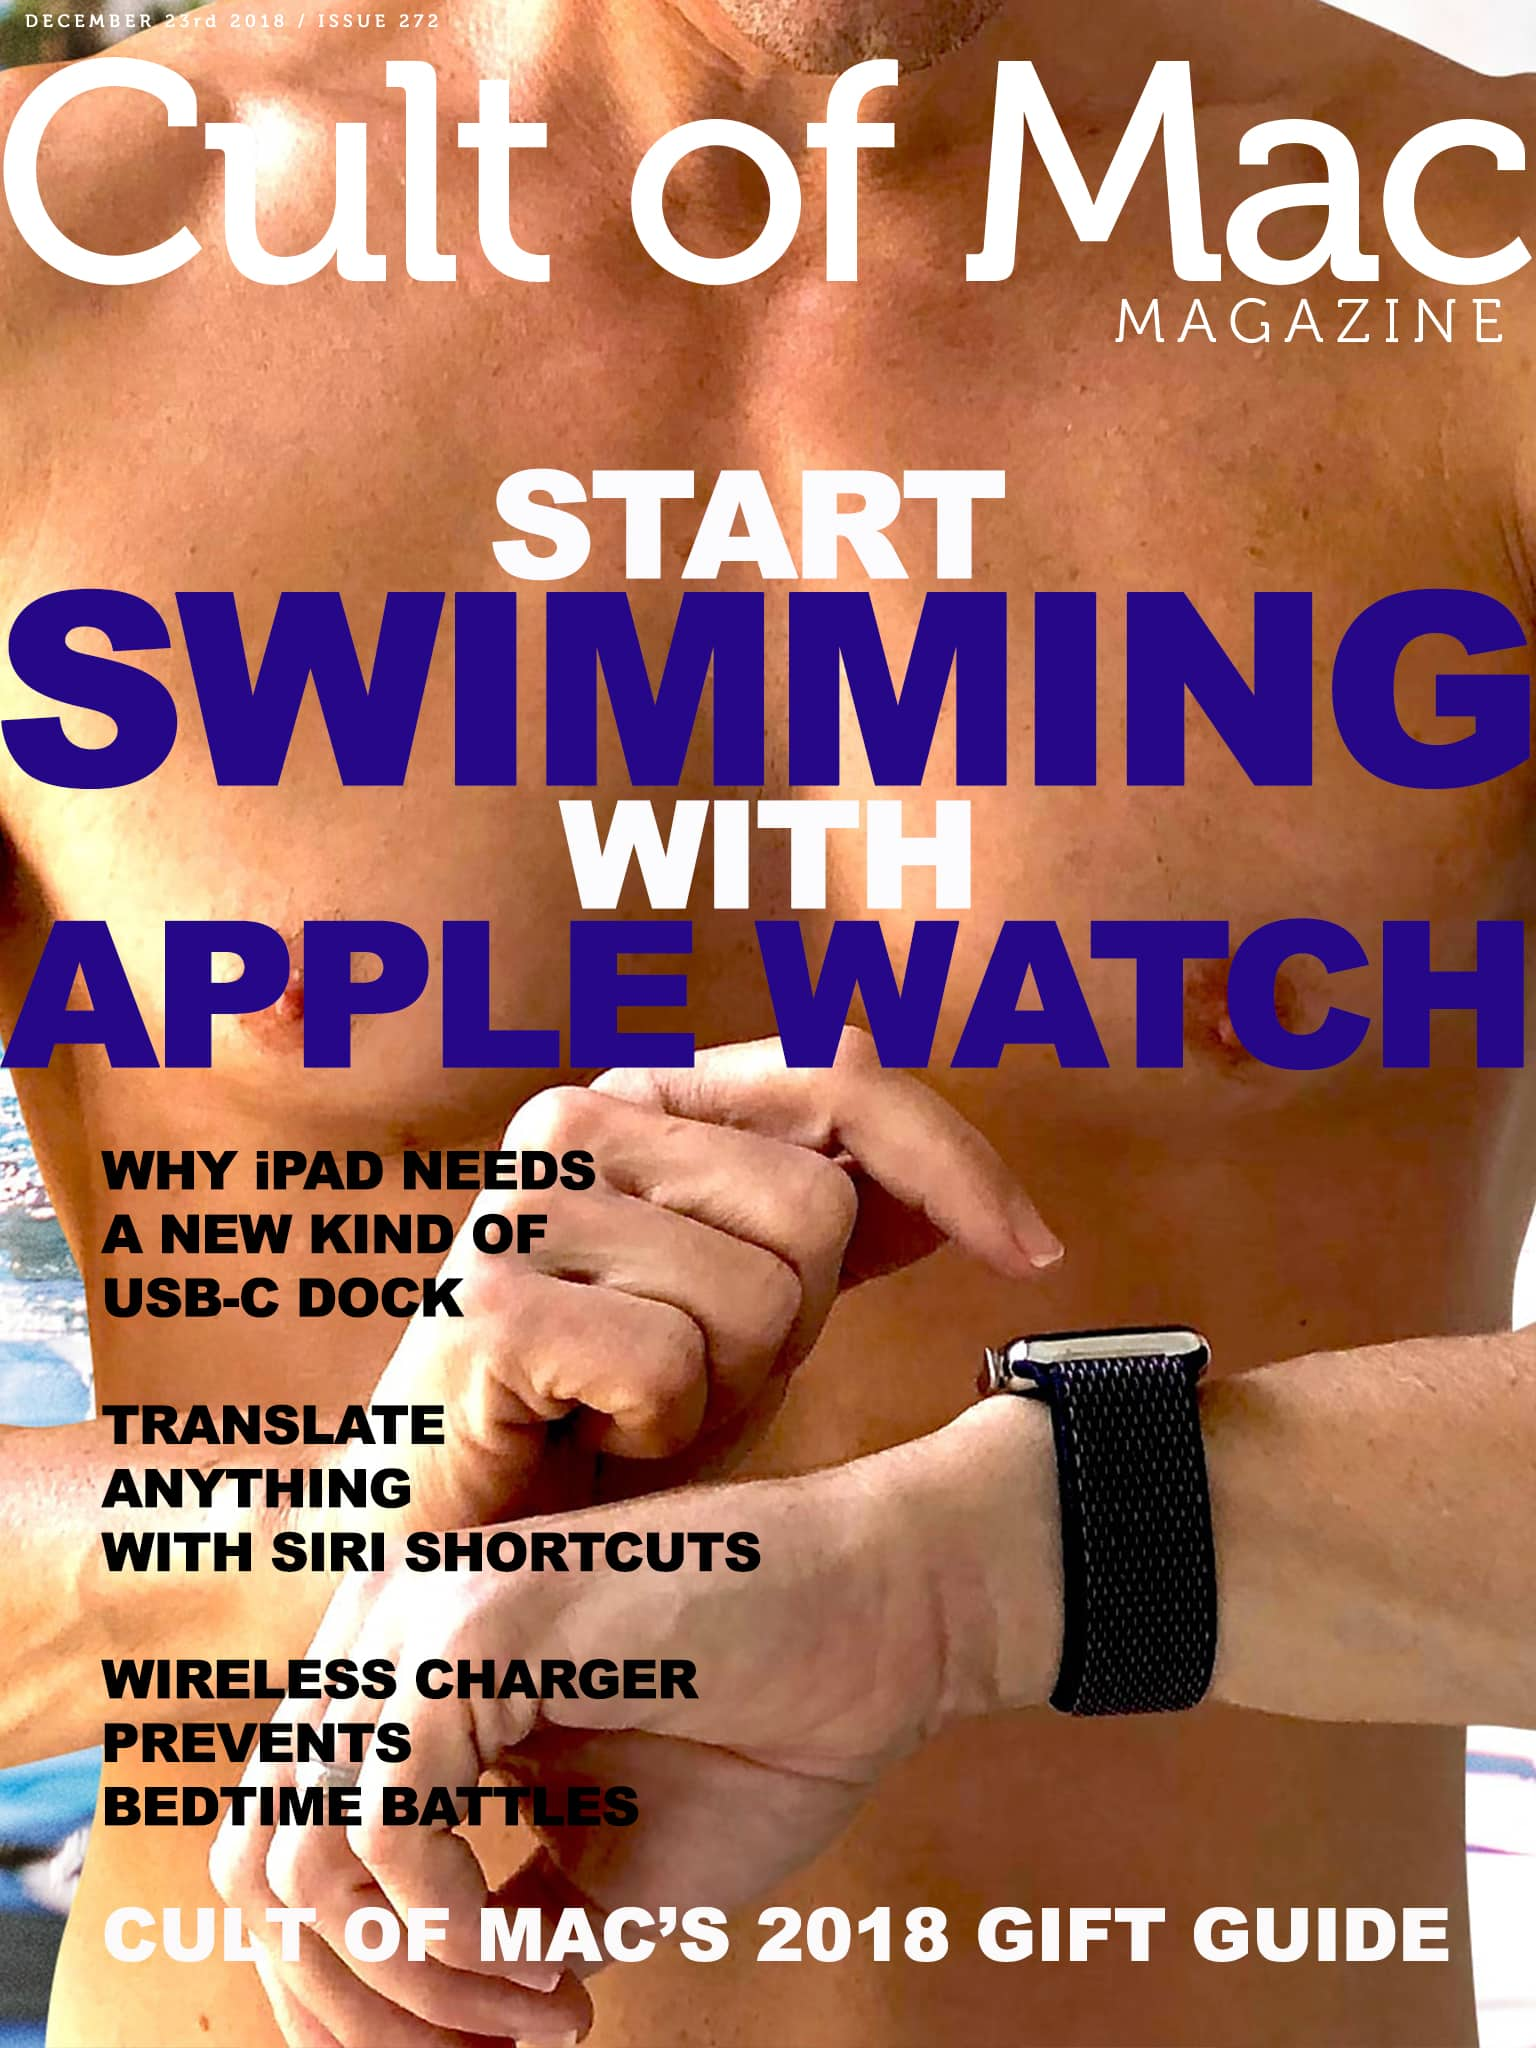 What are you waiting for? Time to jump in and start swimming with Apple Watch!